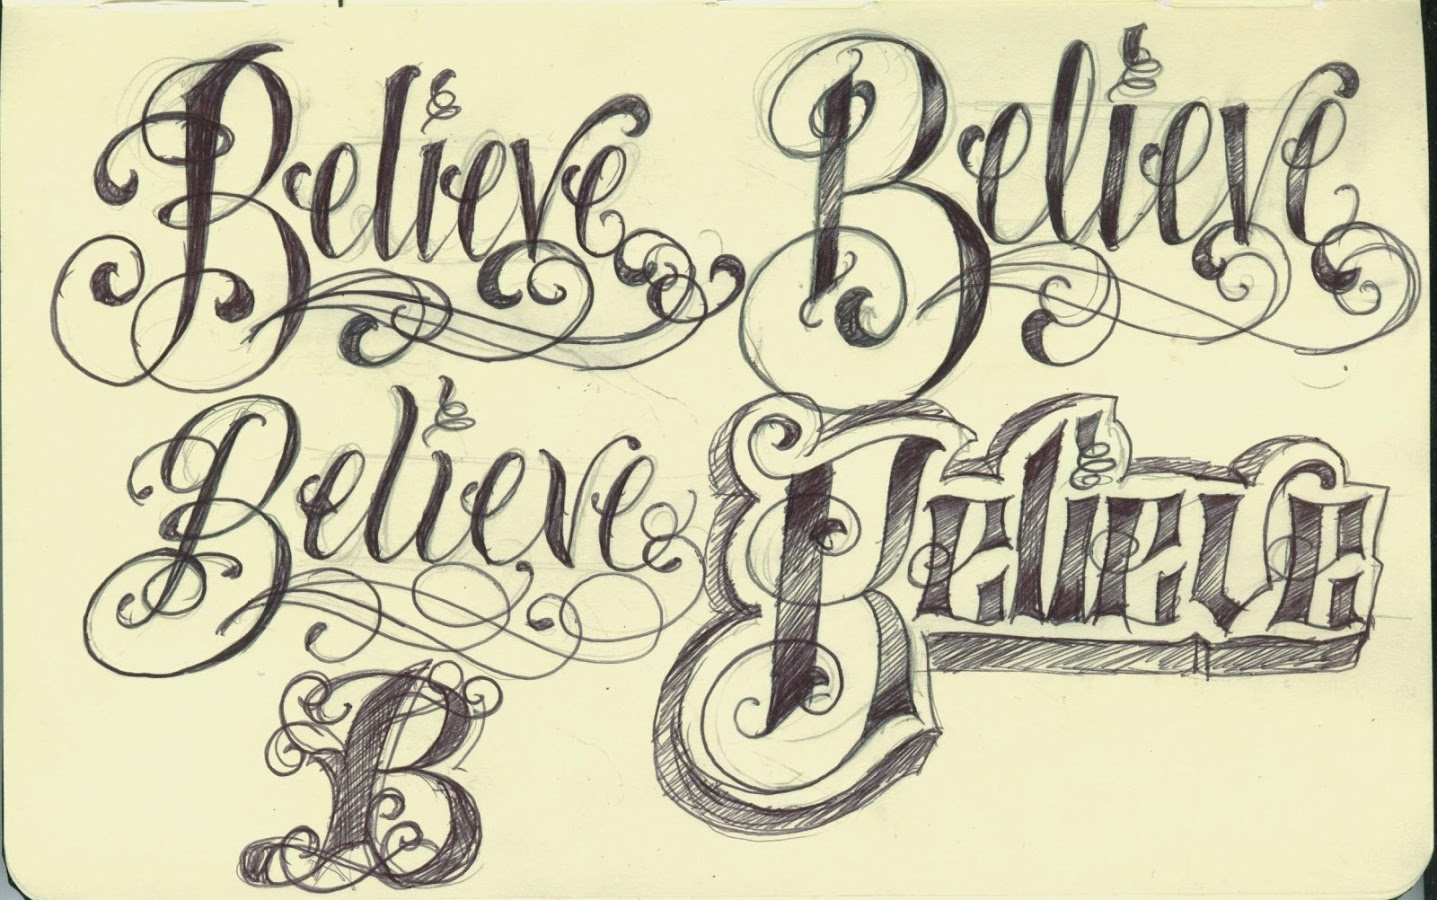 The unusual ways of tattoo lettering